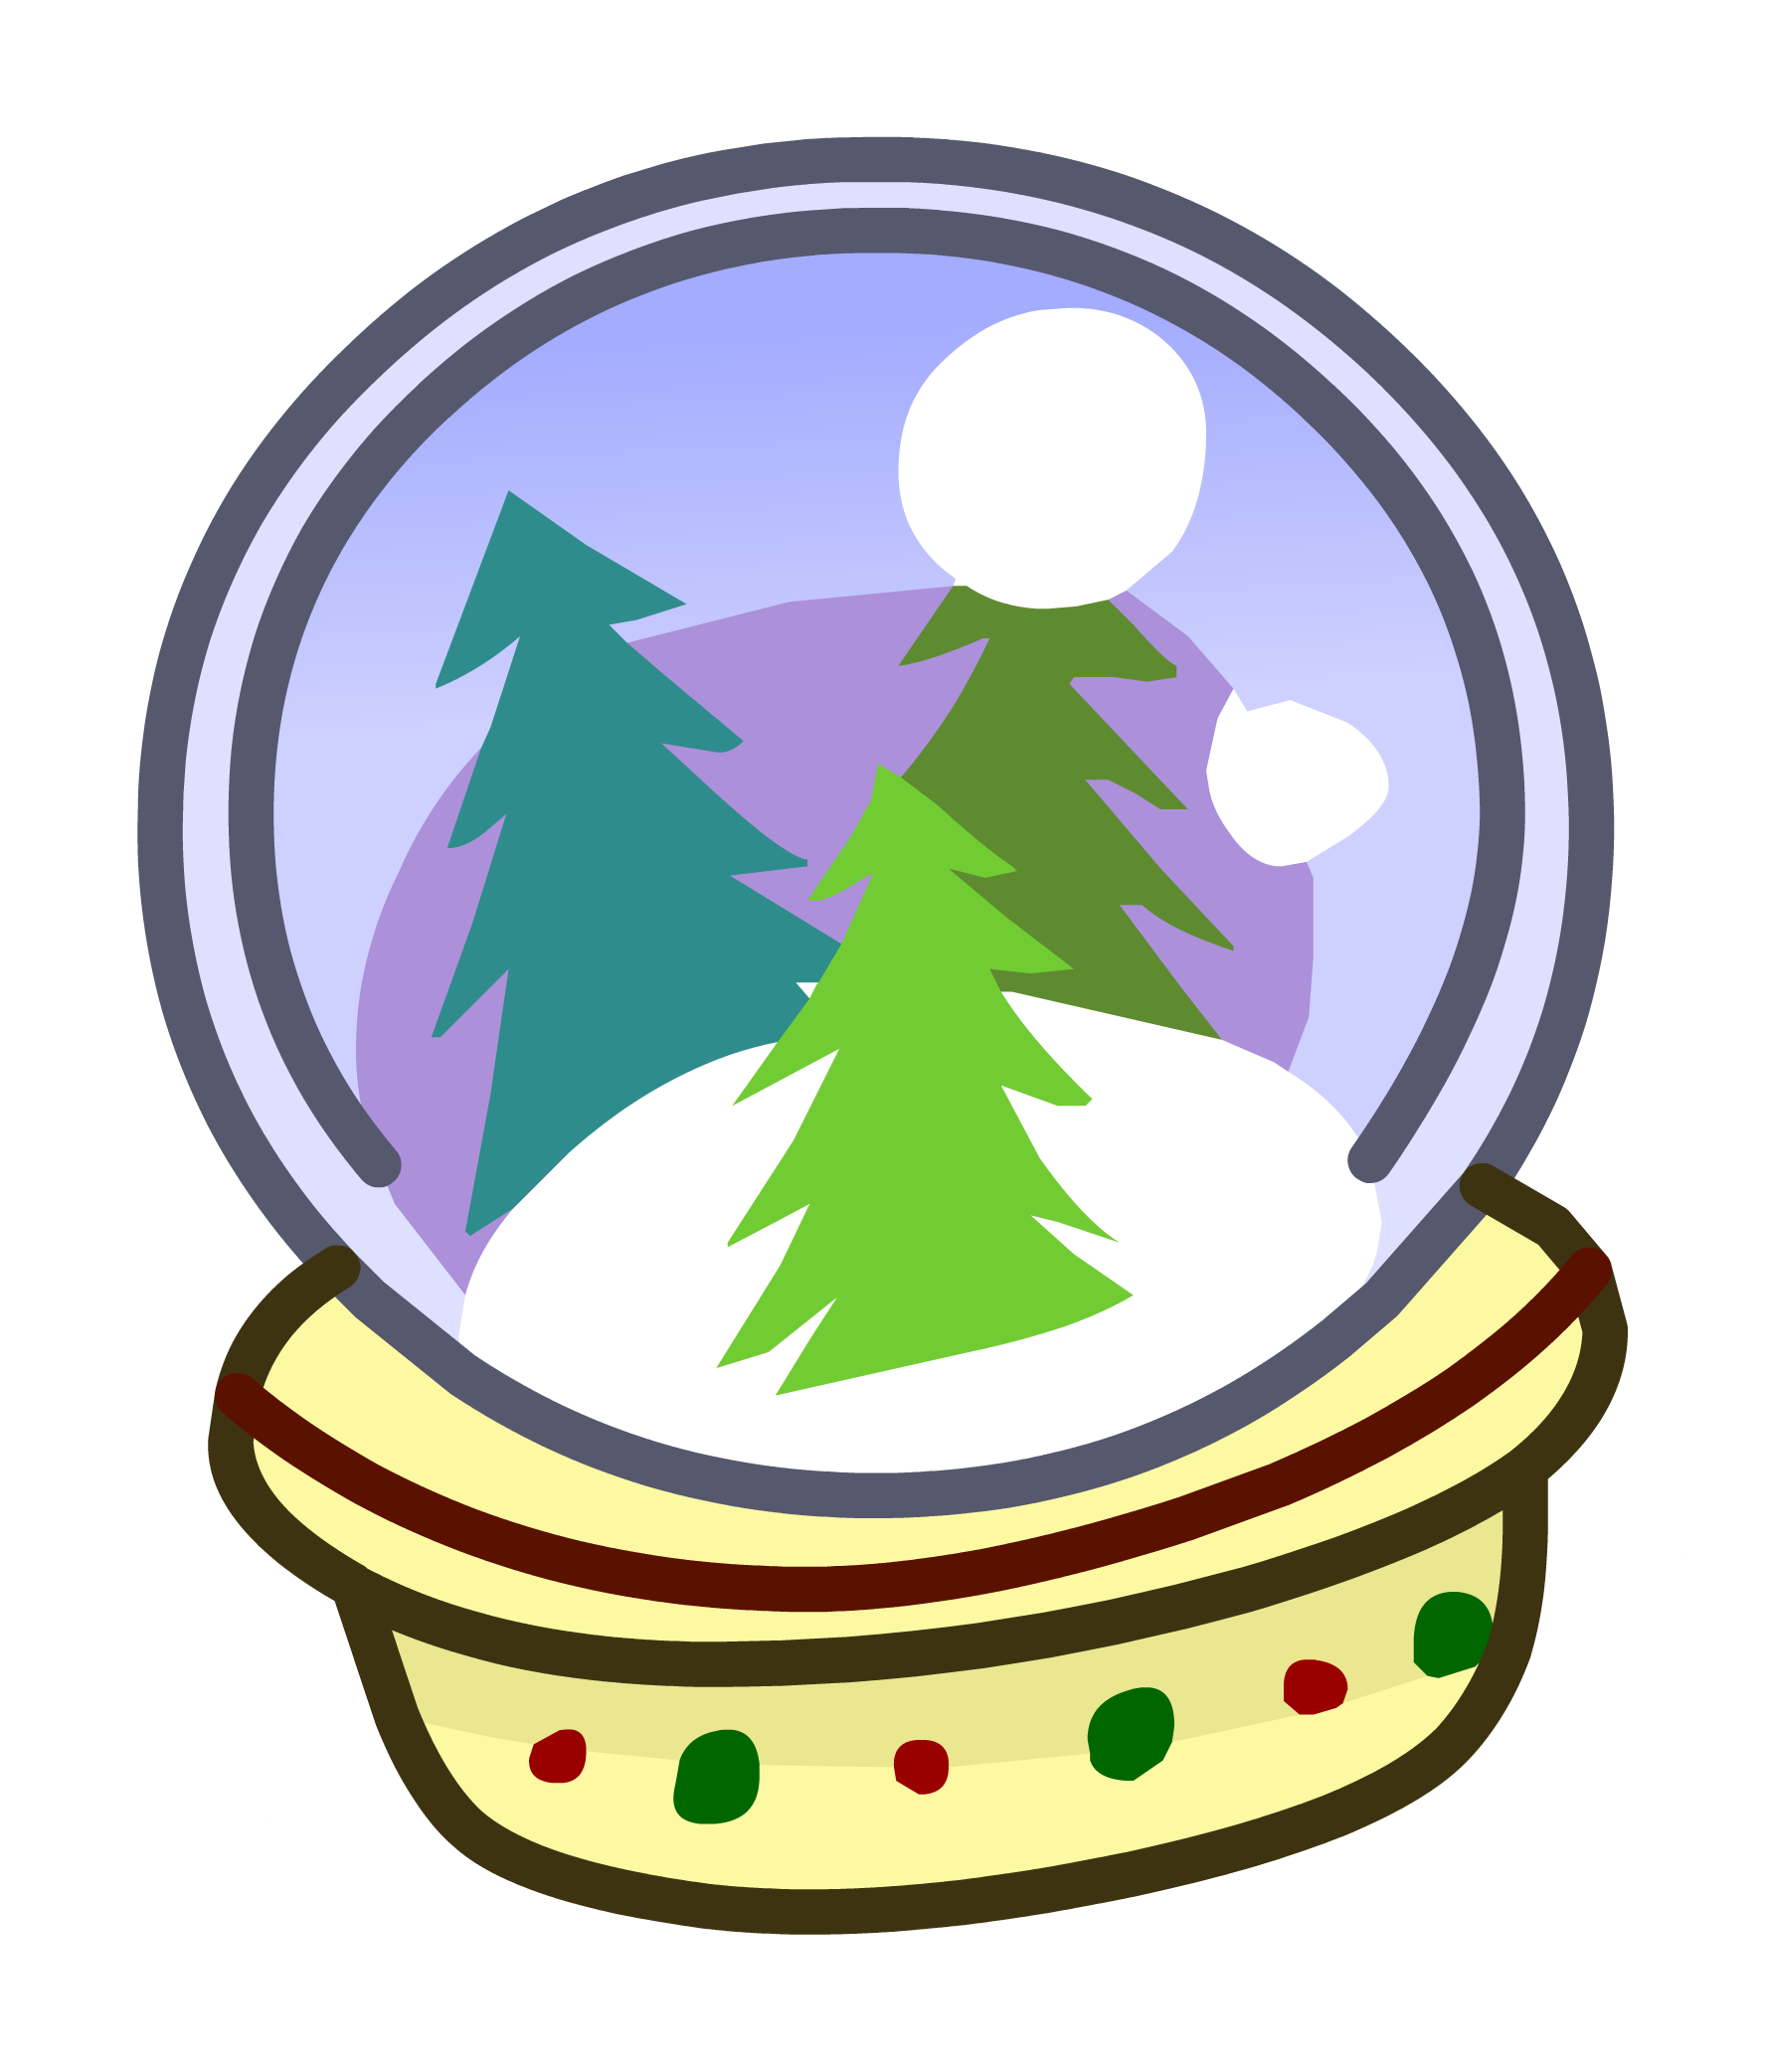 Snowflake globe clipart image library download Snow Globe Pin | Club Penguin Wiki | FANDOM powered by Wikia image library download